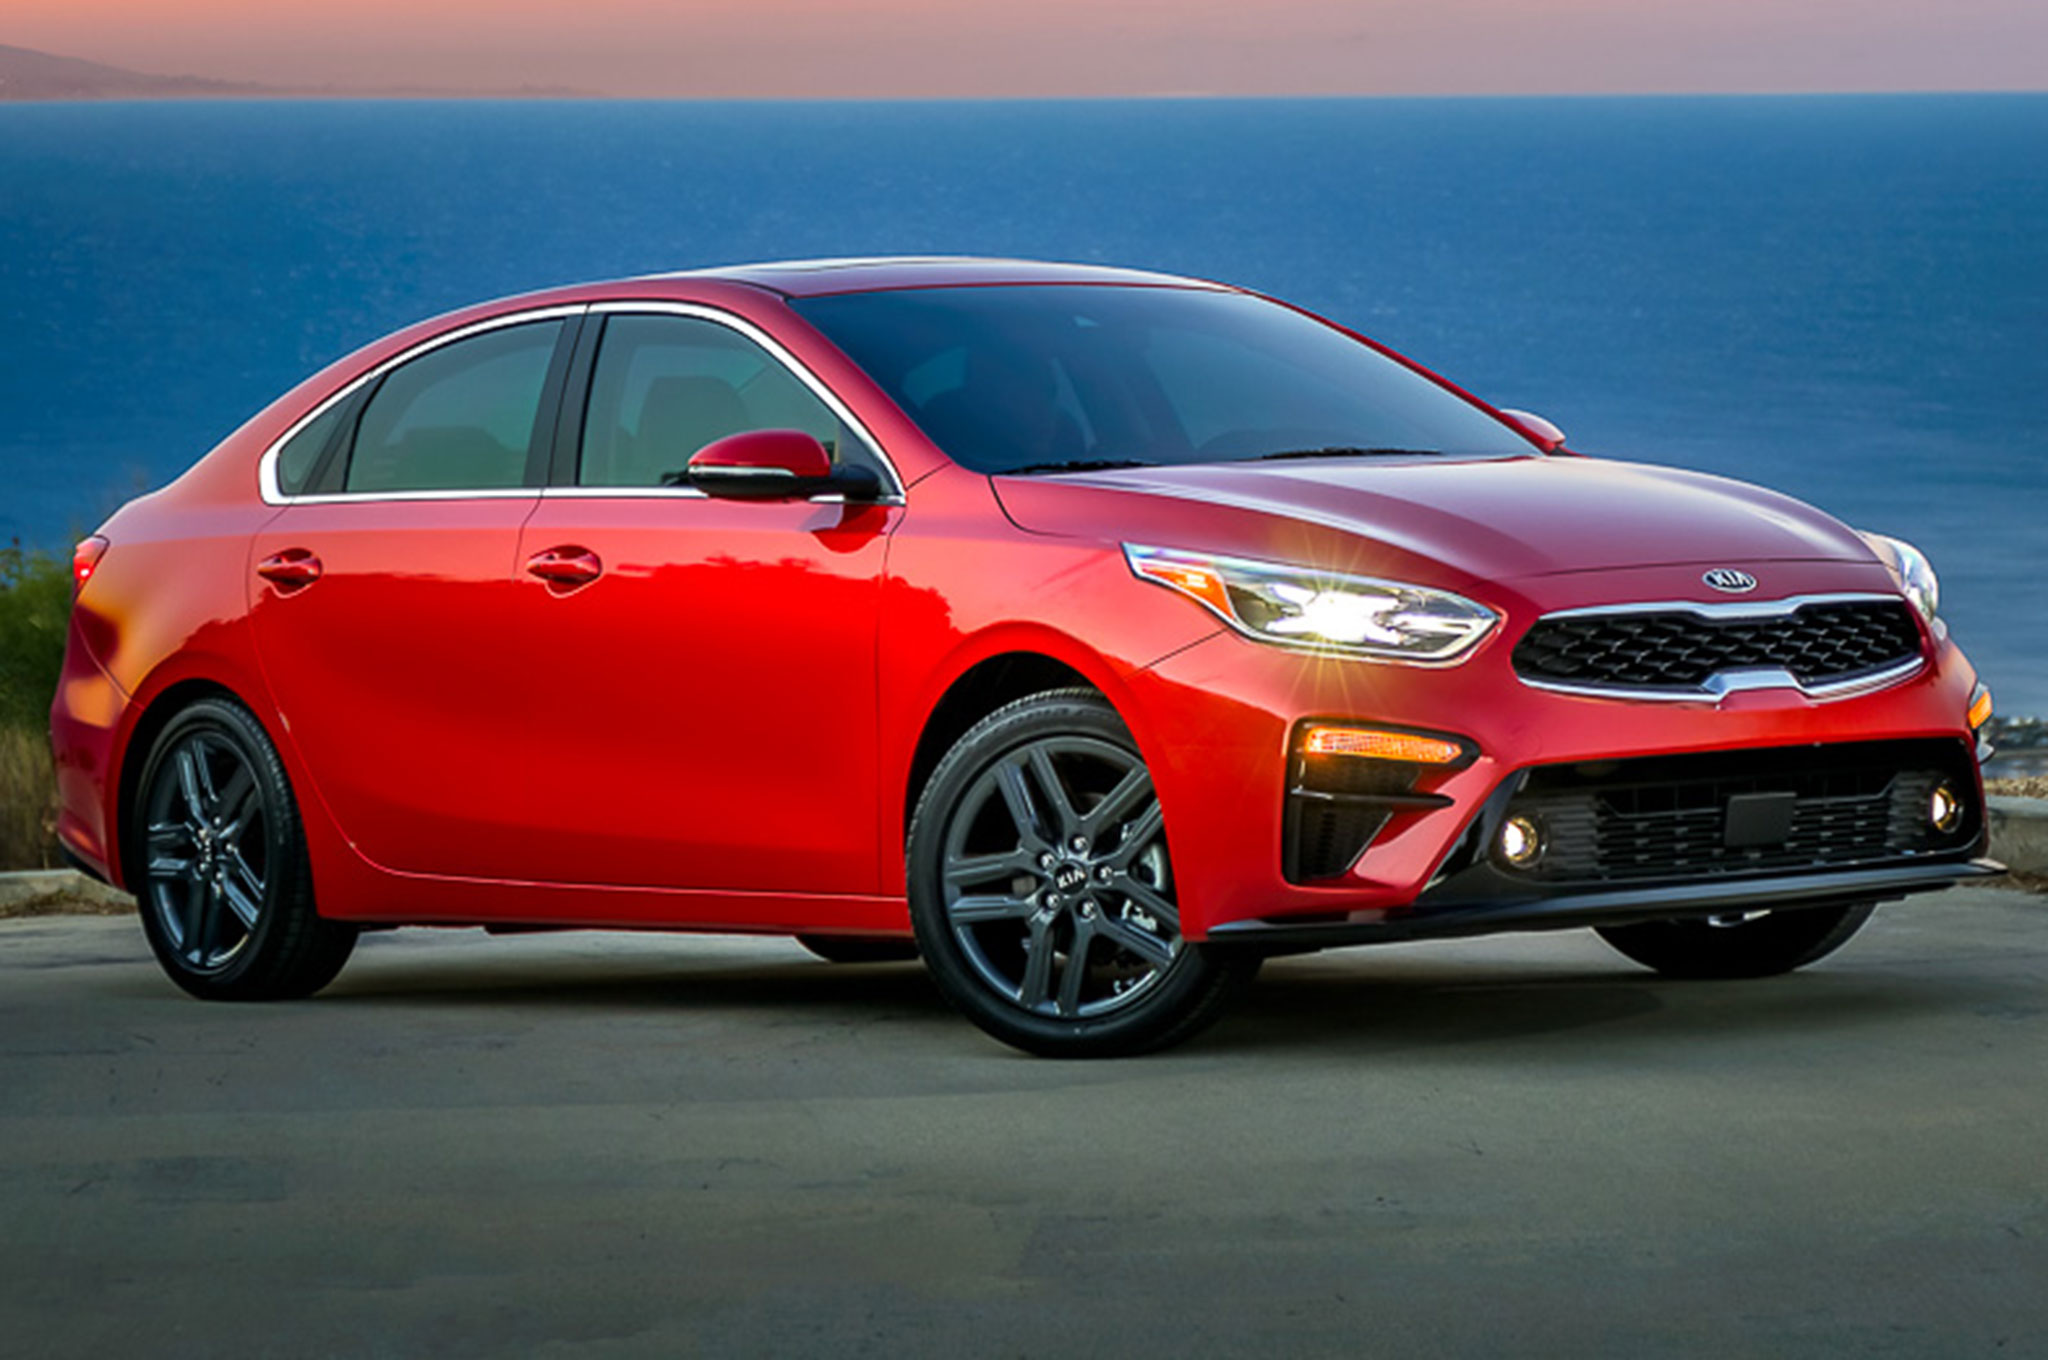 2019 Kia Forte Front Side View